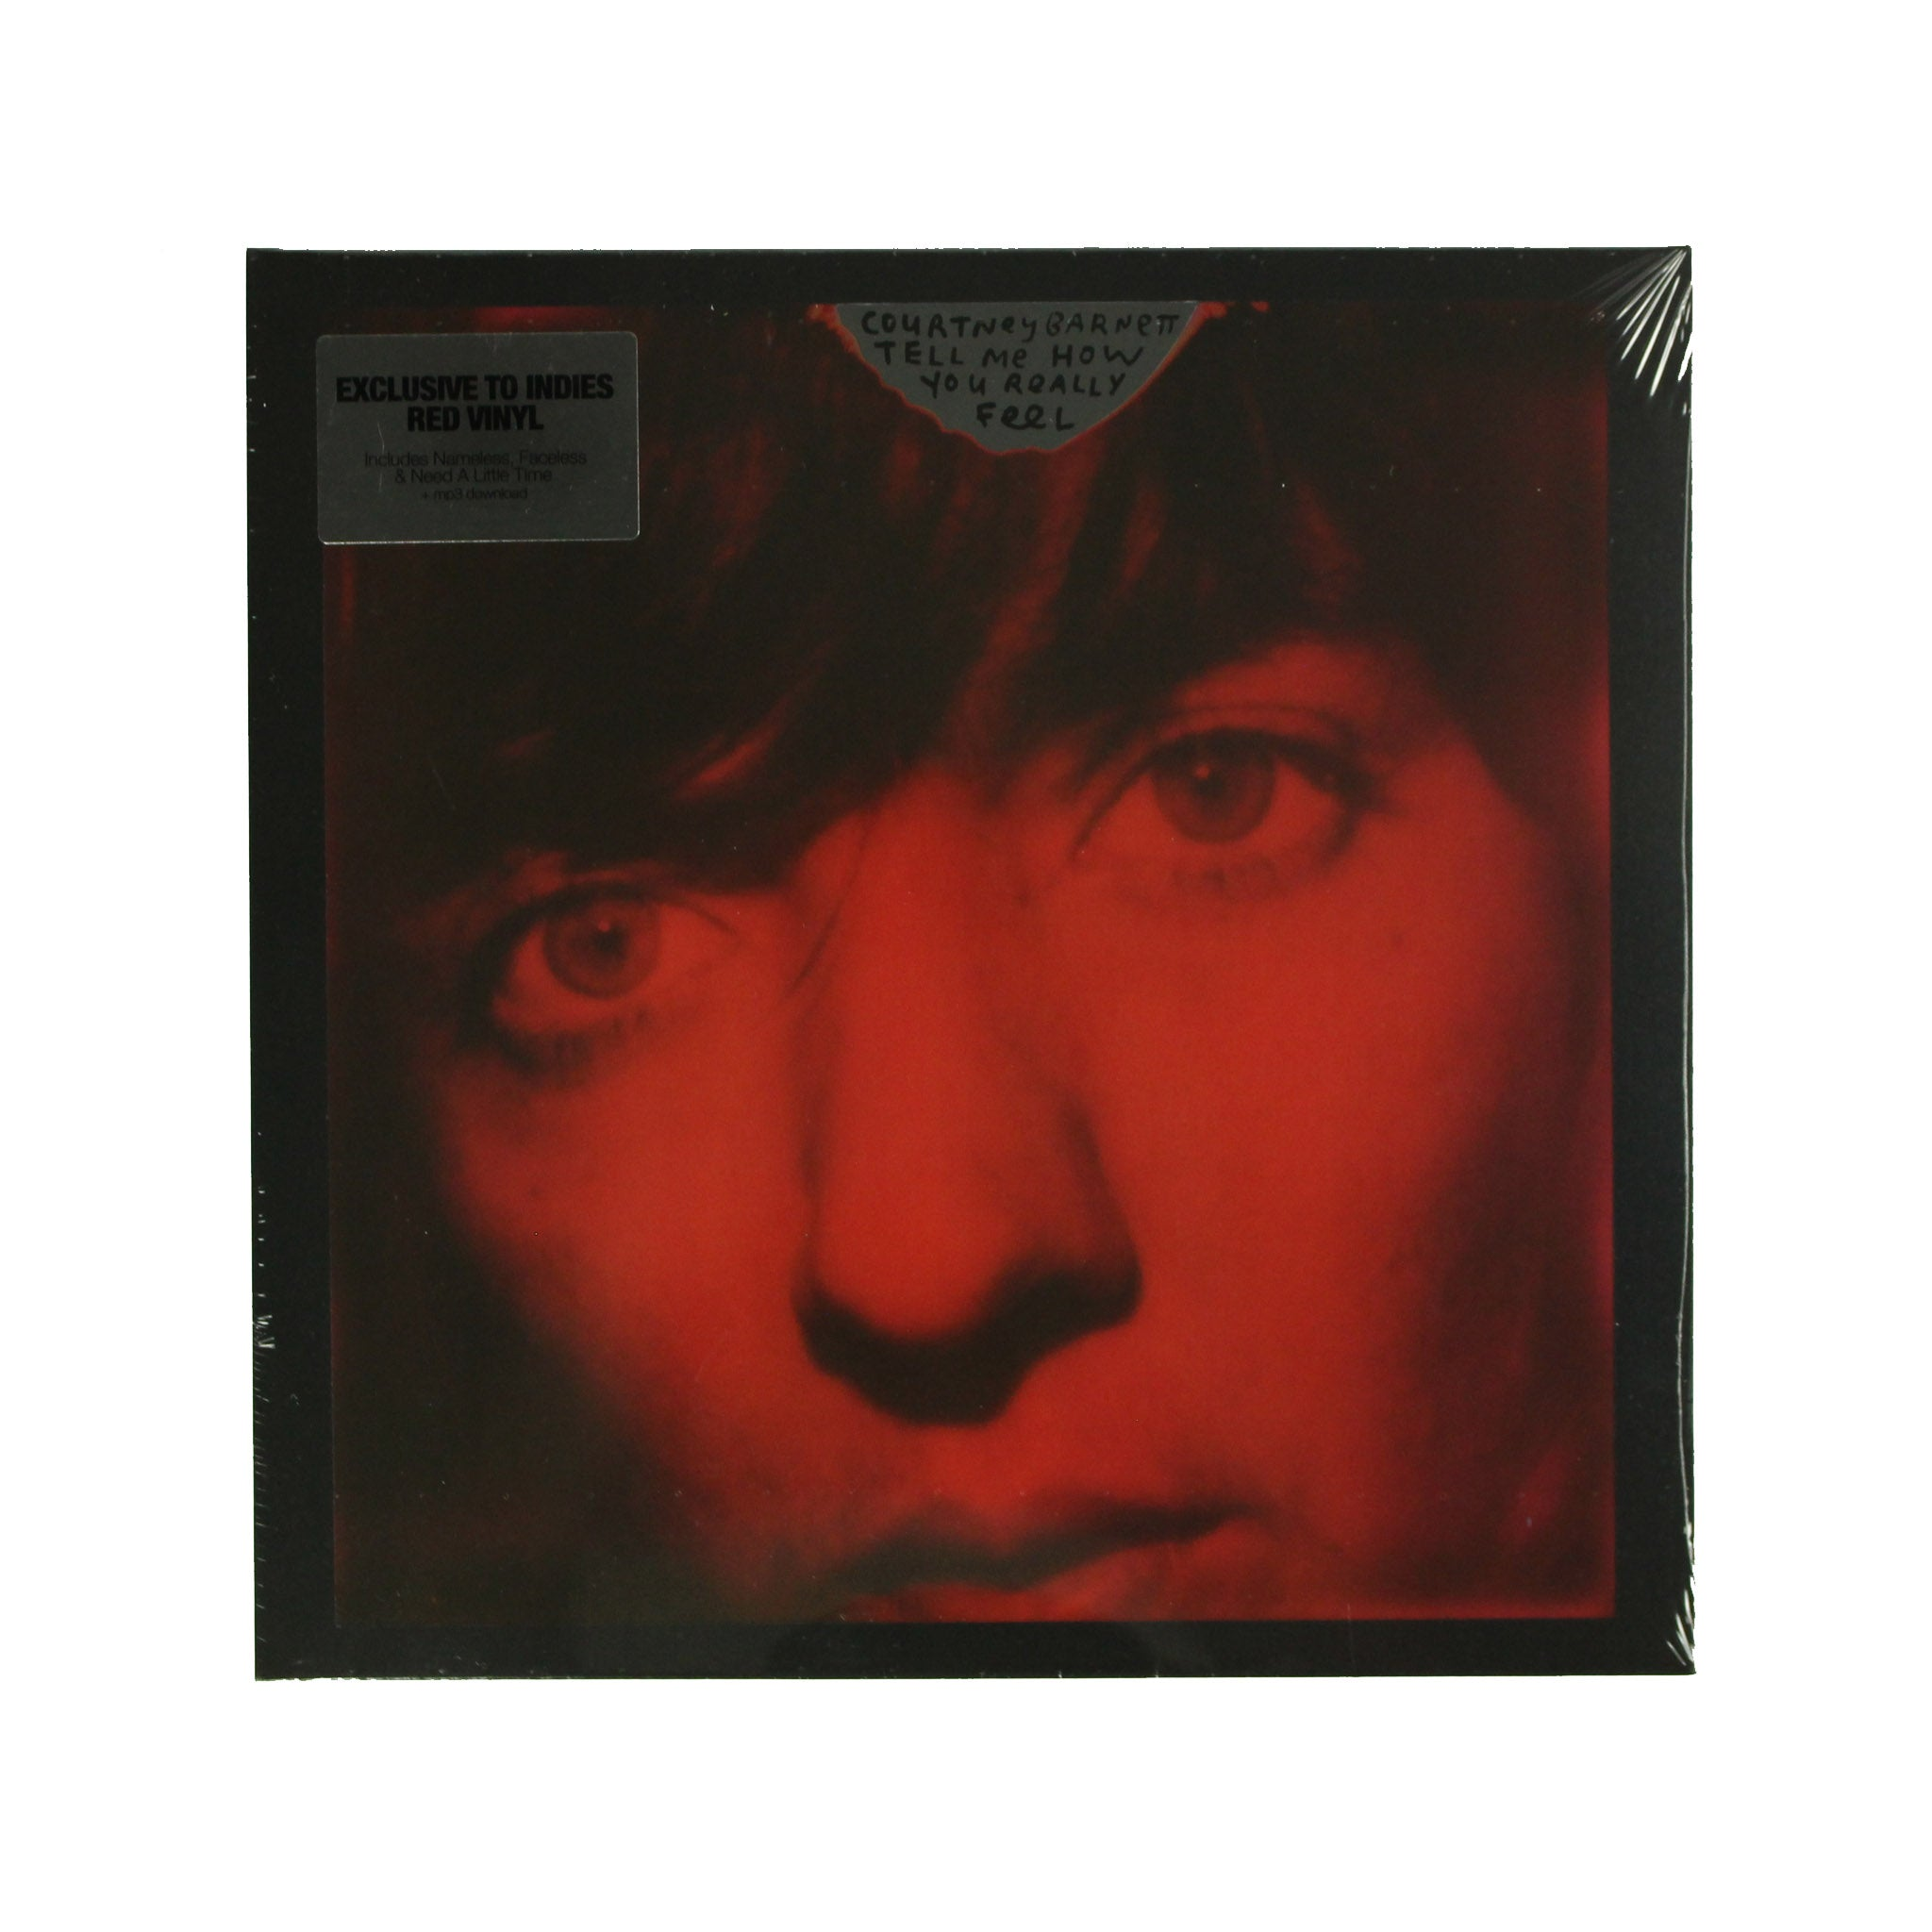 "Courtney Barnett ‎– Tell Me How You Really Feel 12"" Vinyl Record, Vinyl, X-Records"